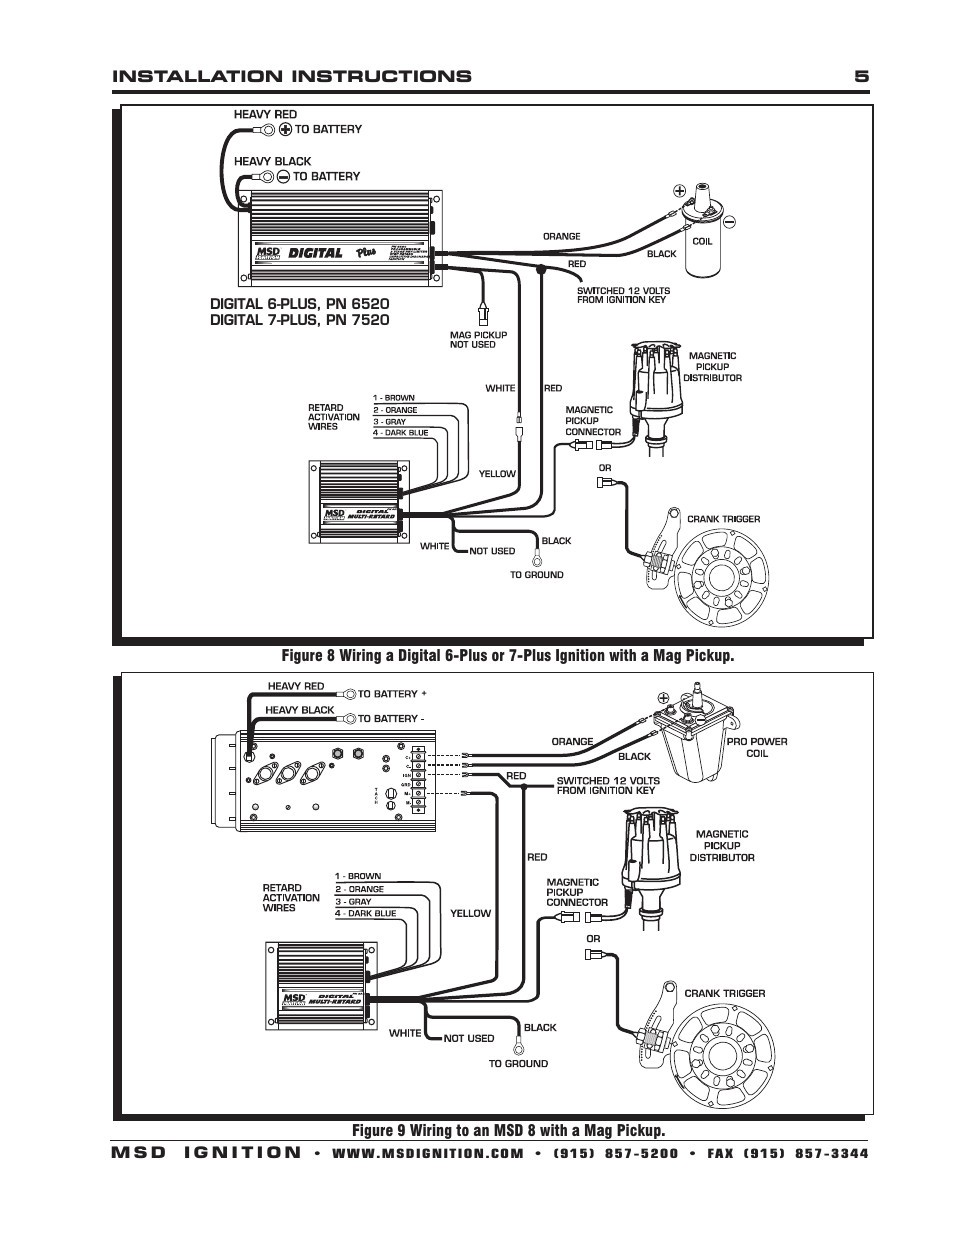 Msd Digital 7531 Wiring Diagram Starting Know About Further 1974 Plymouth Duster Ignition To Grid Schematic Diagrams Rh Ogmconsulting Co